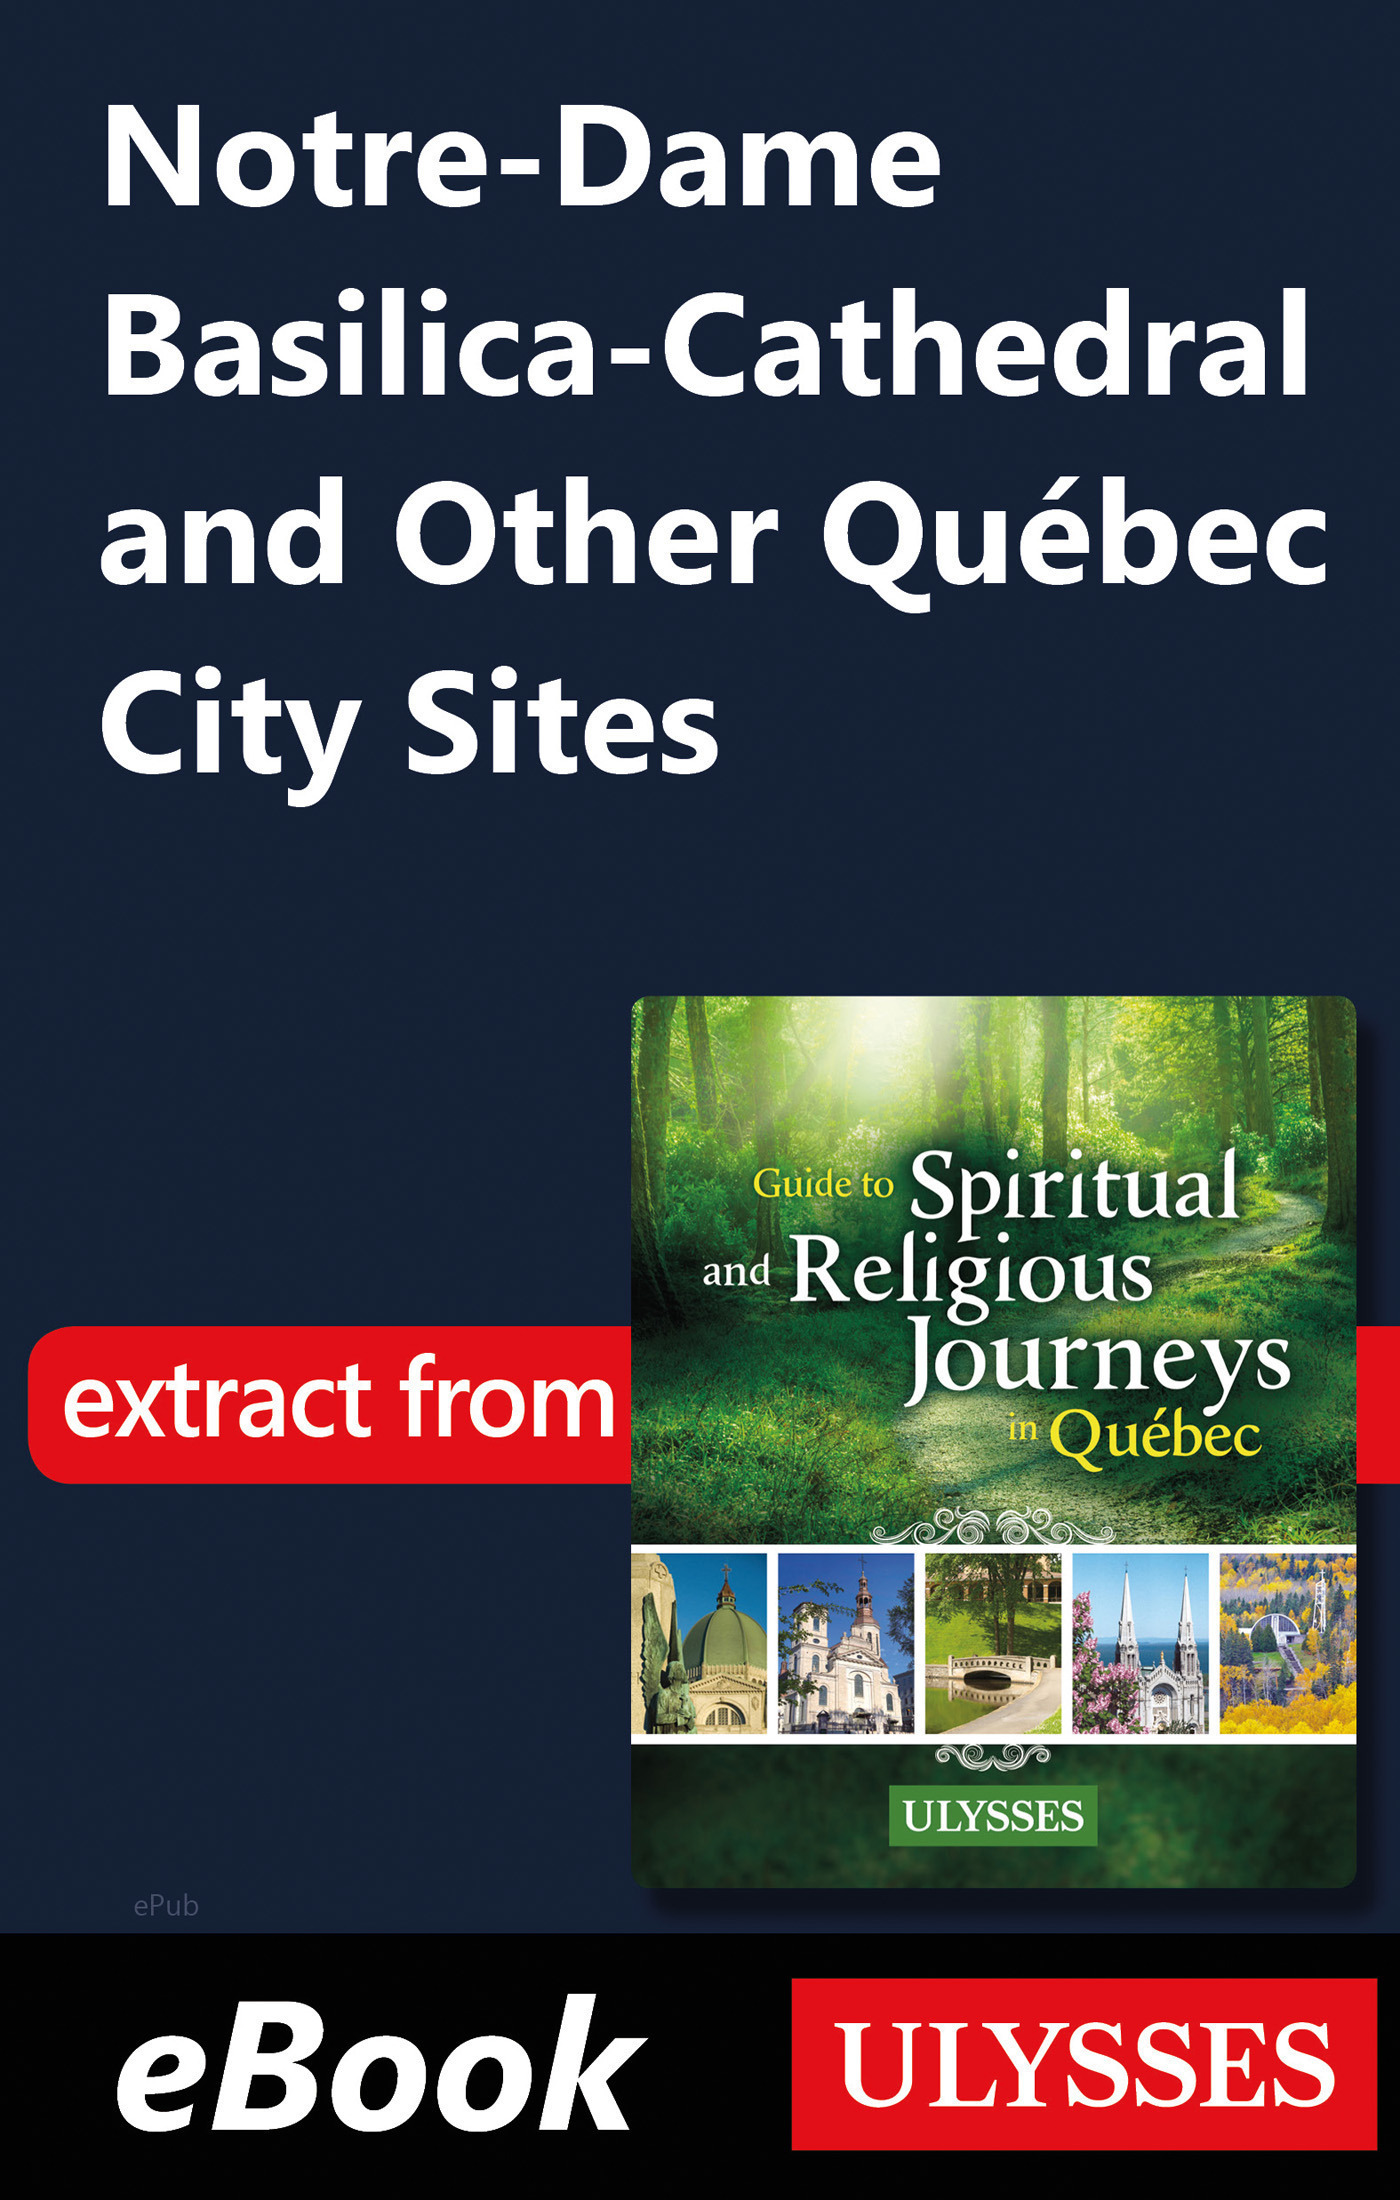 Notre-Dame Basilica-Cathedral and Other Québec City Sites